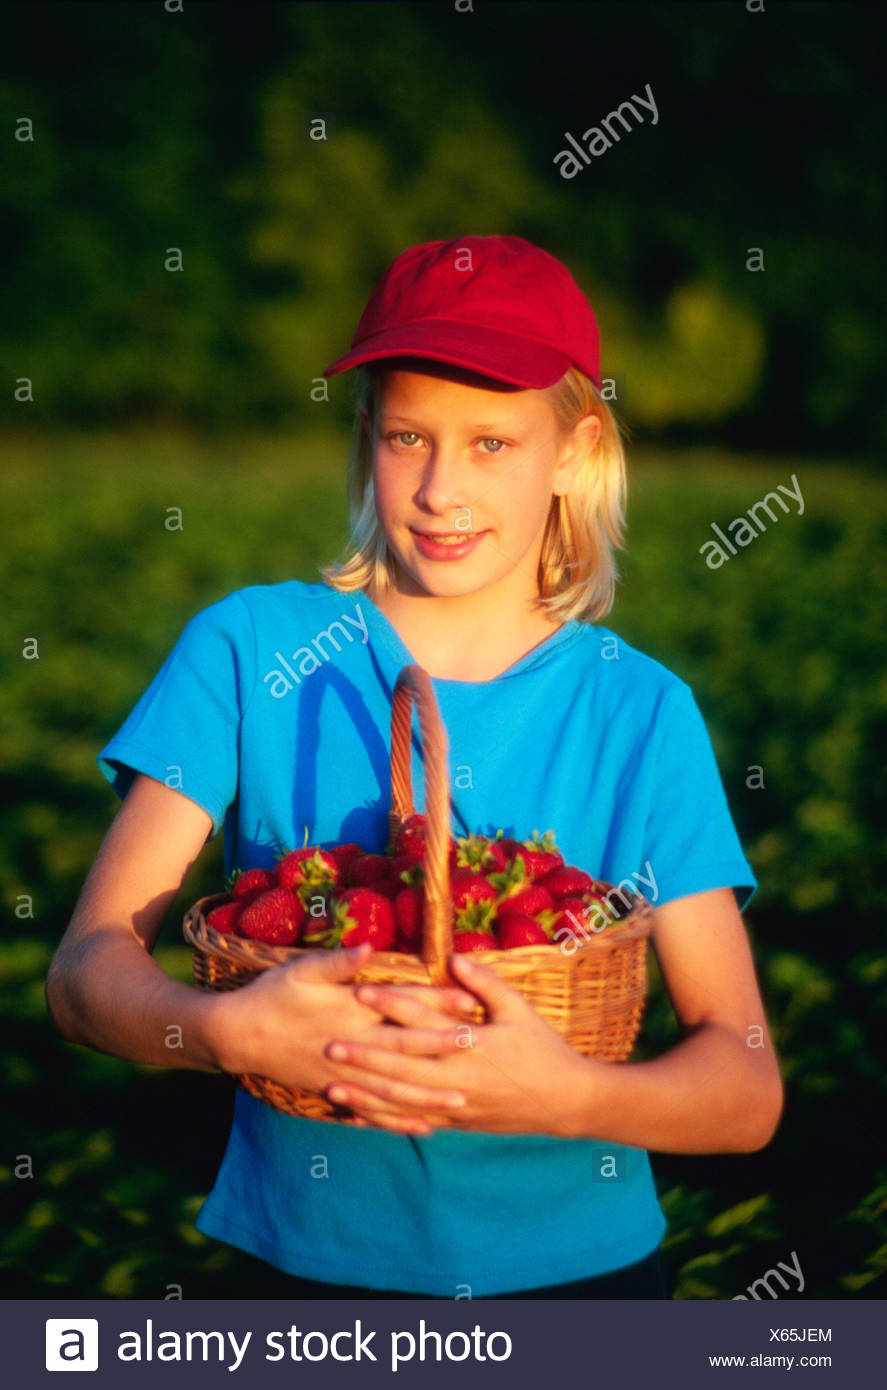 Agriculture - A farm girl poses with freshly picked strawberries in the field / near Niverville, Manitoba, Canada. - Stock Image